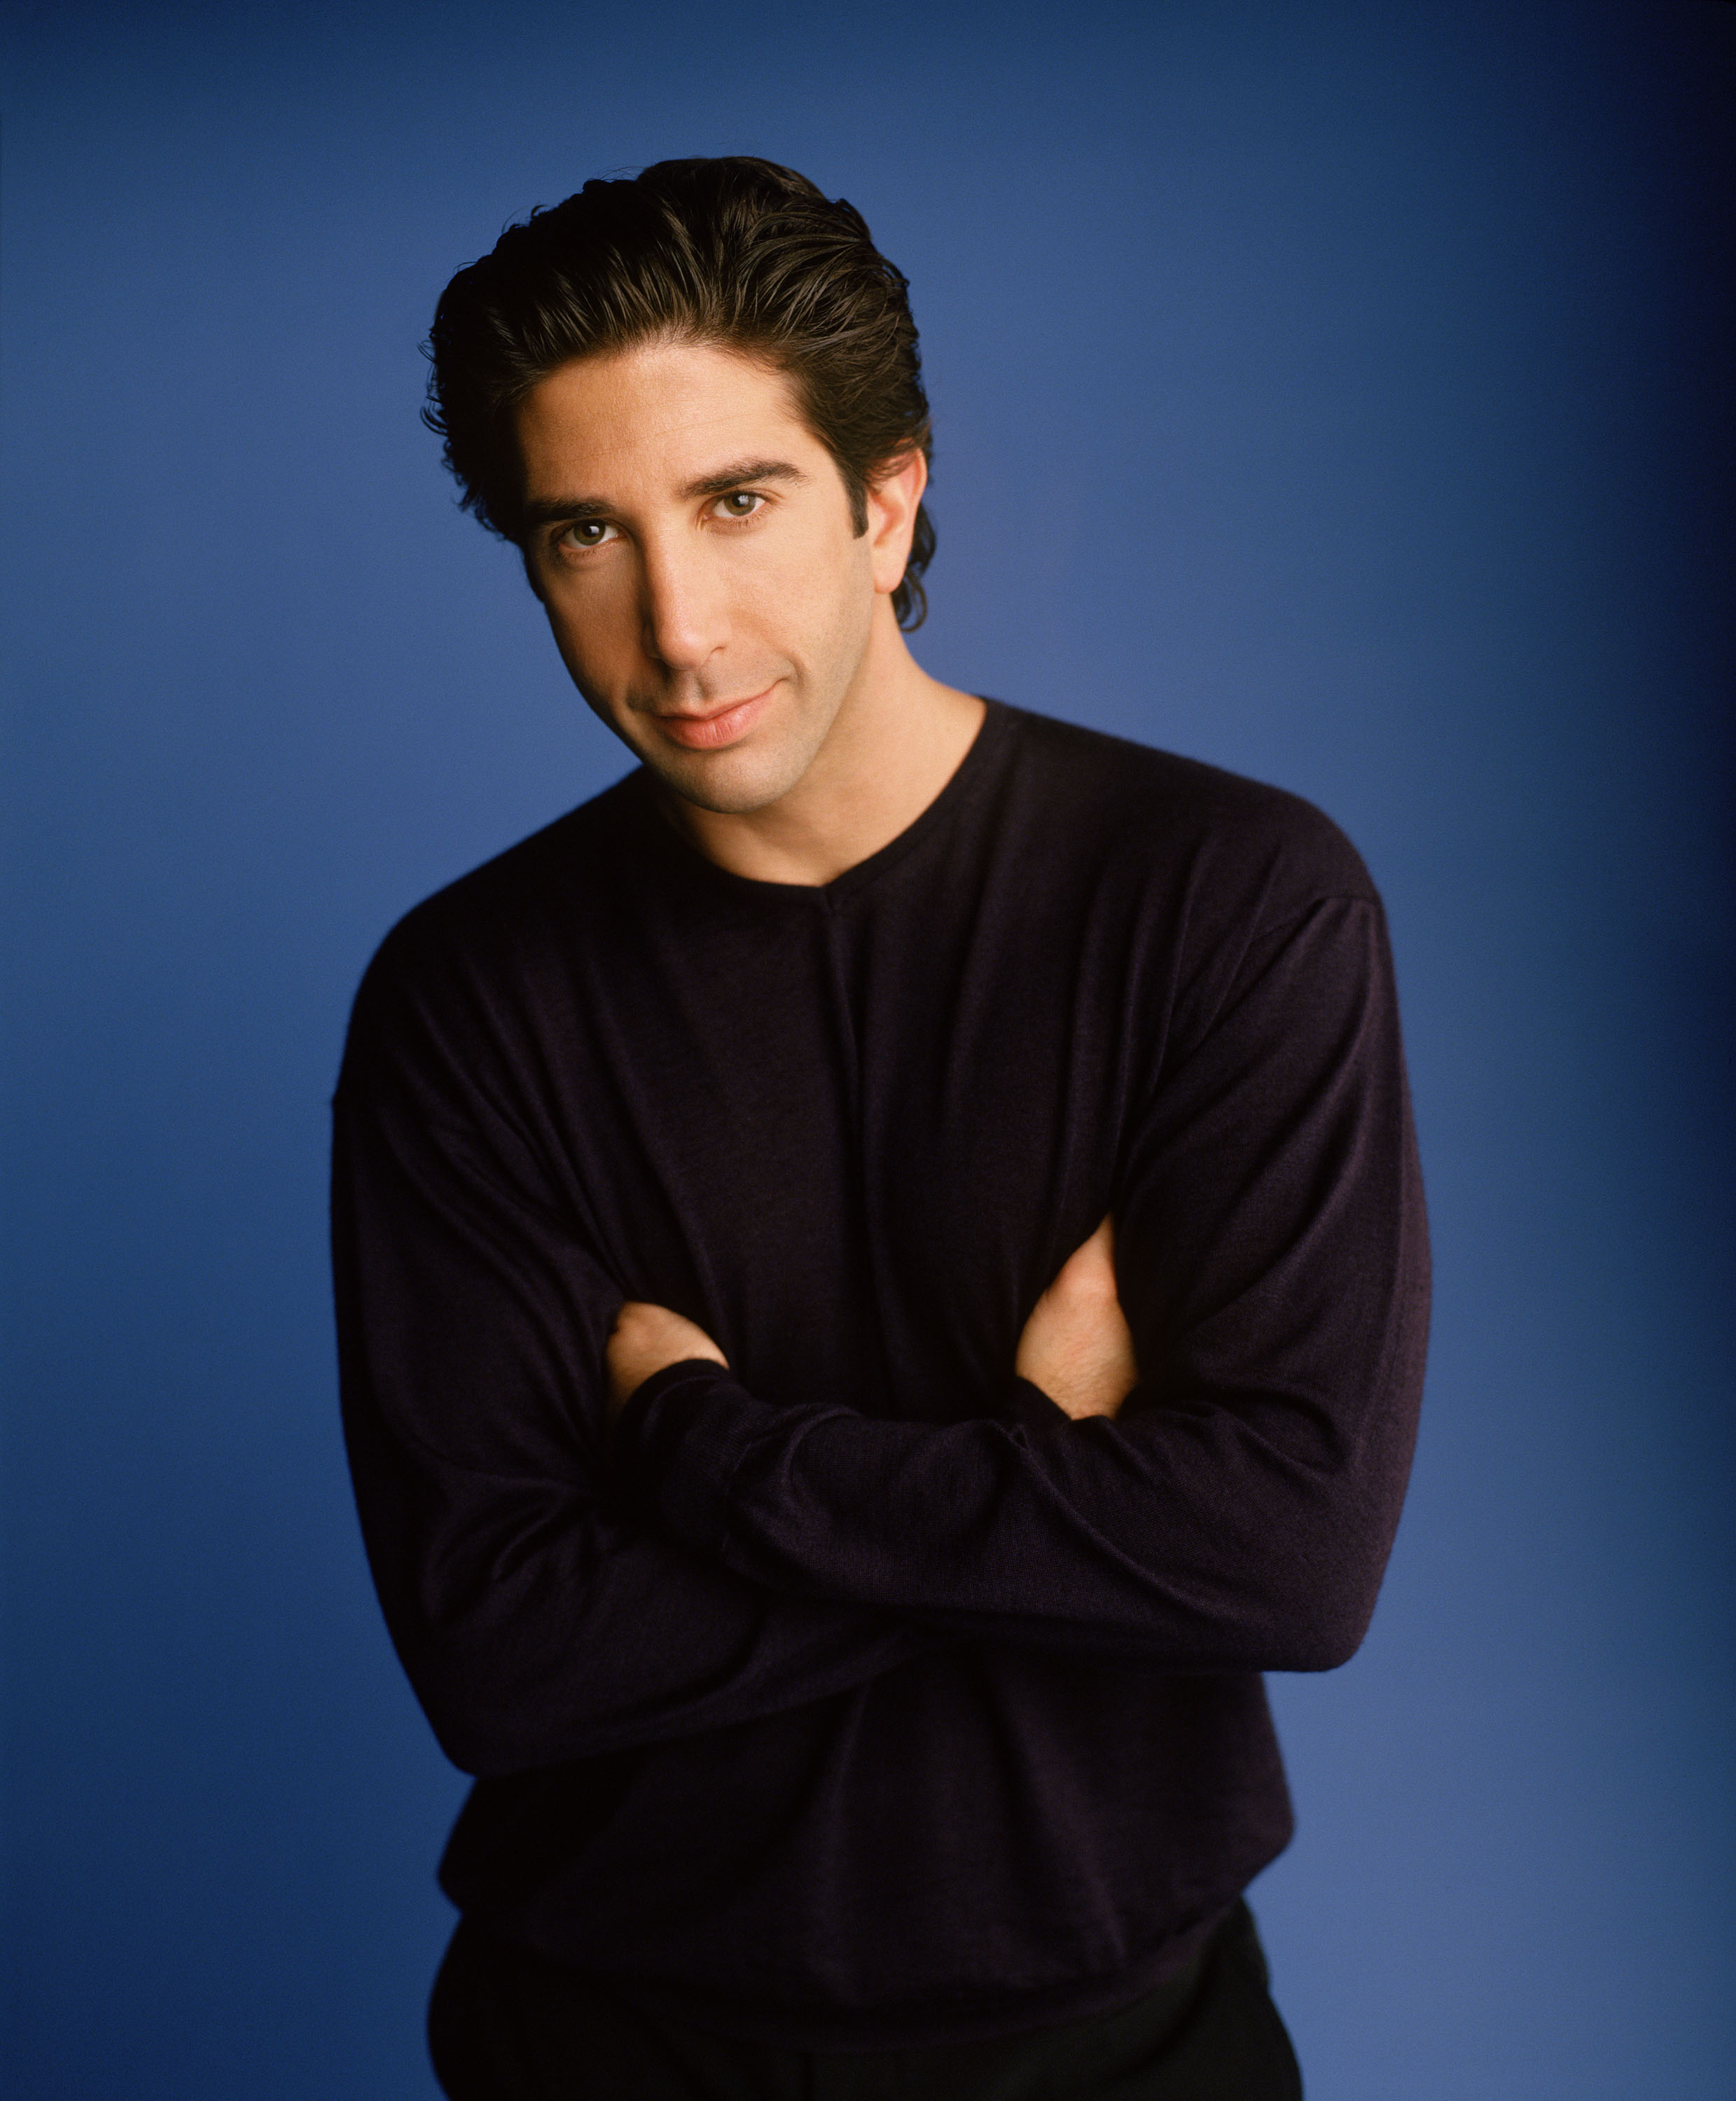 David Schwimmer photo, pics, wallpaper - photo #